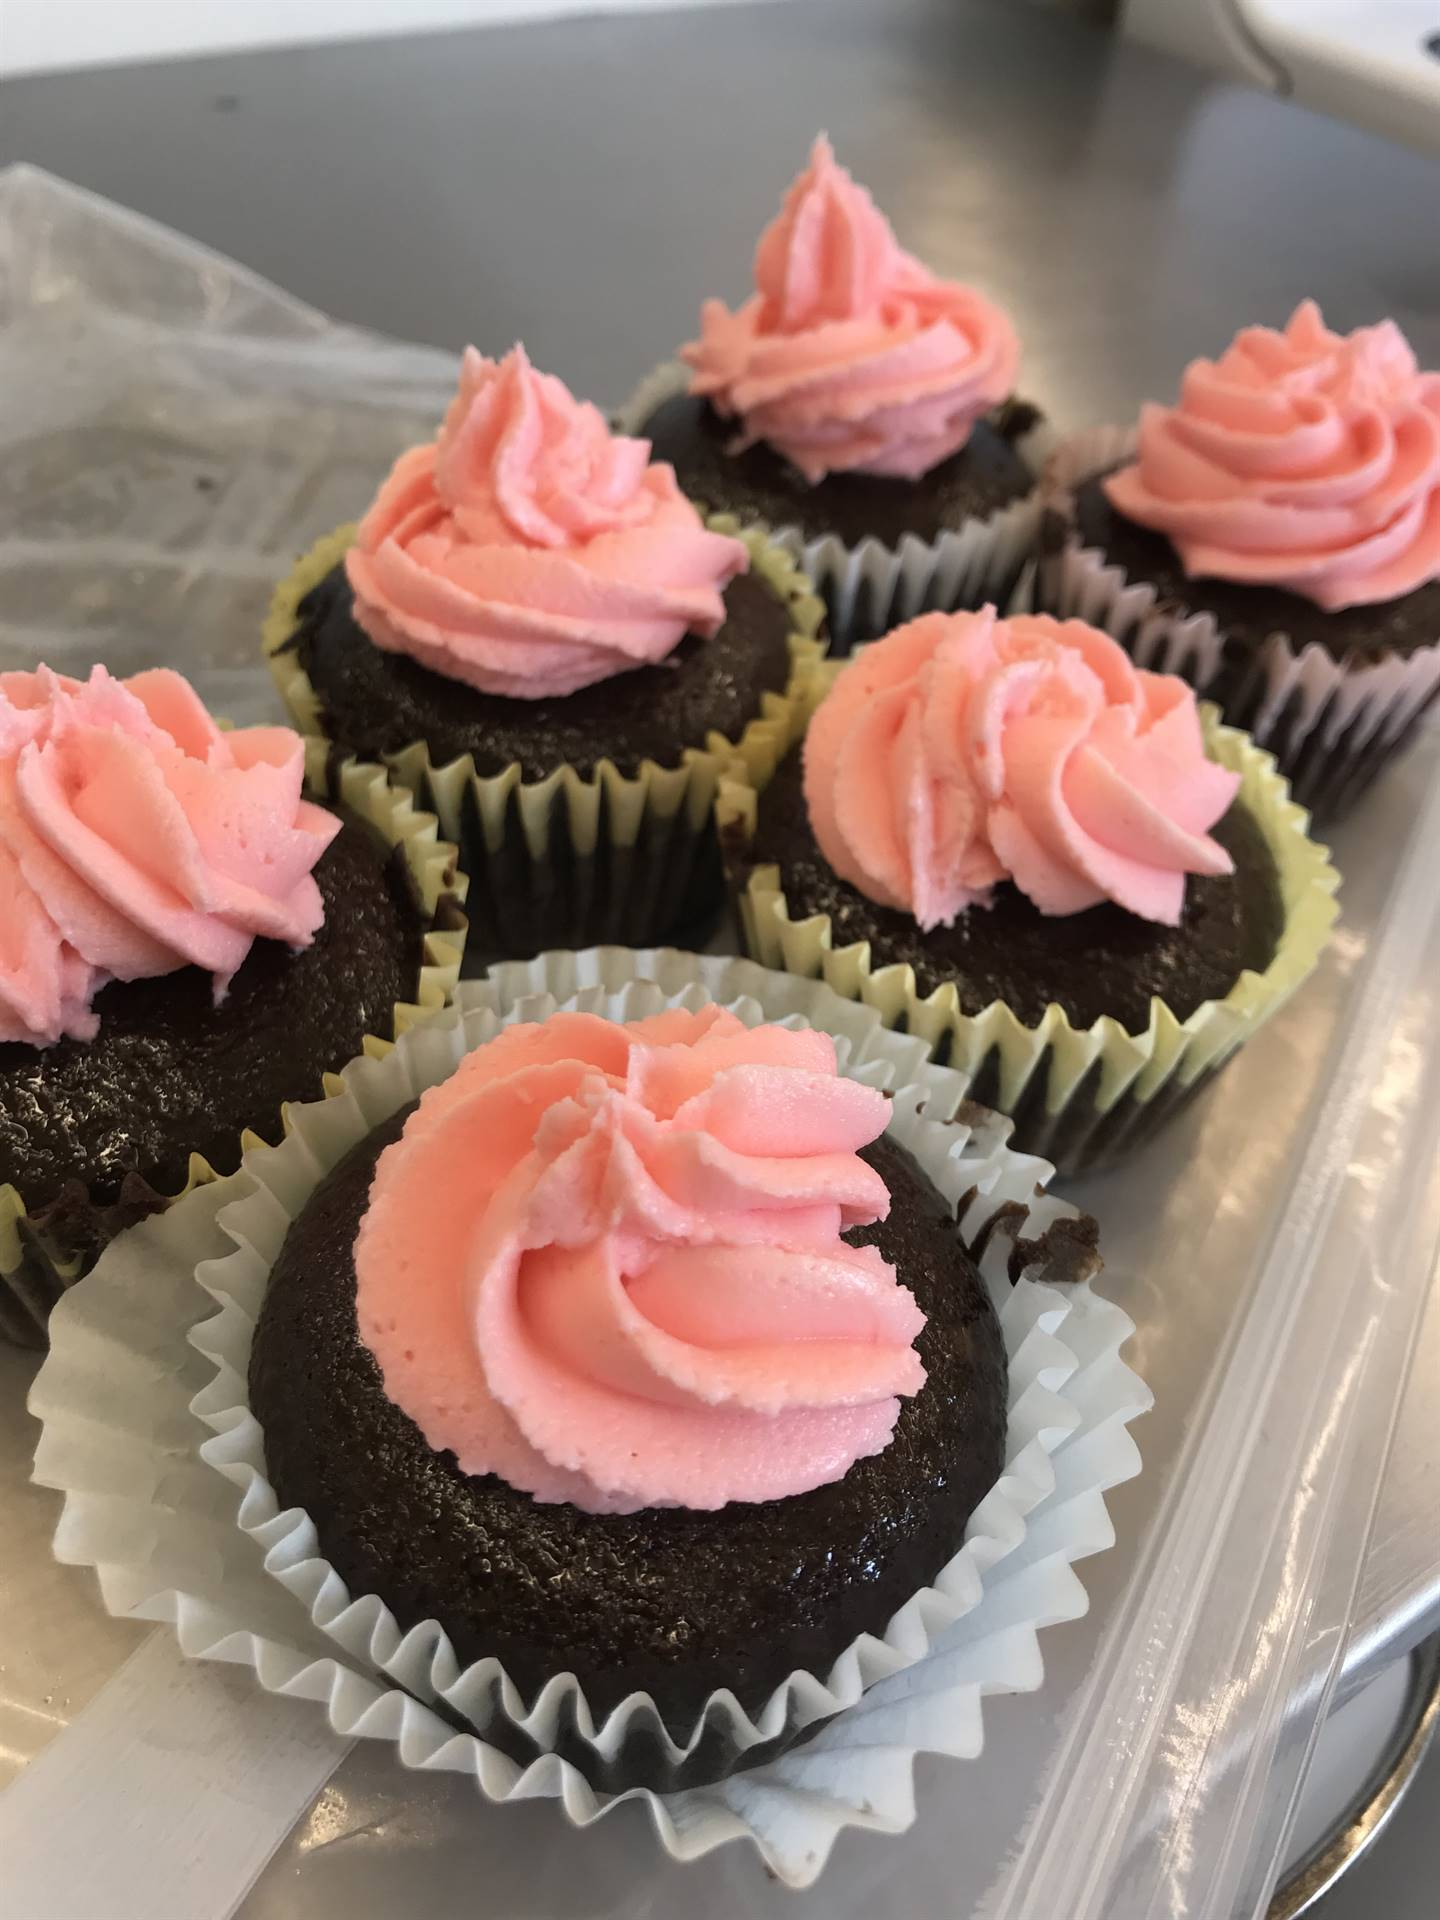 Food Service - Cupcakes